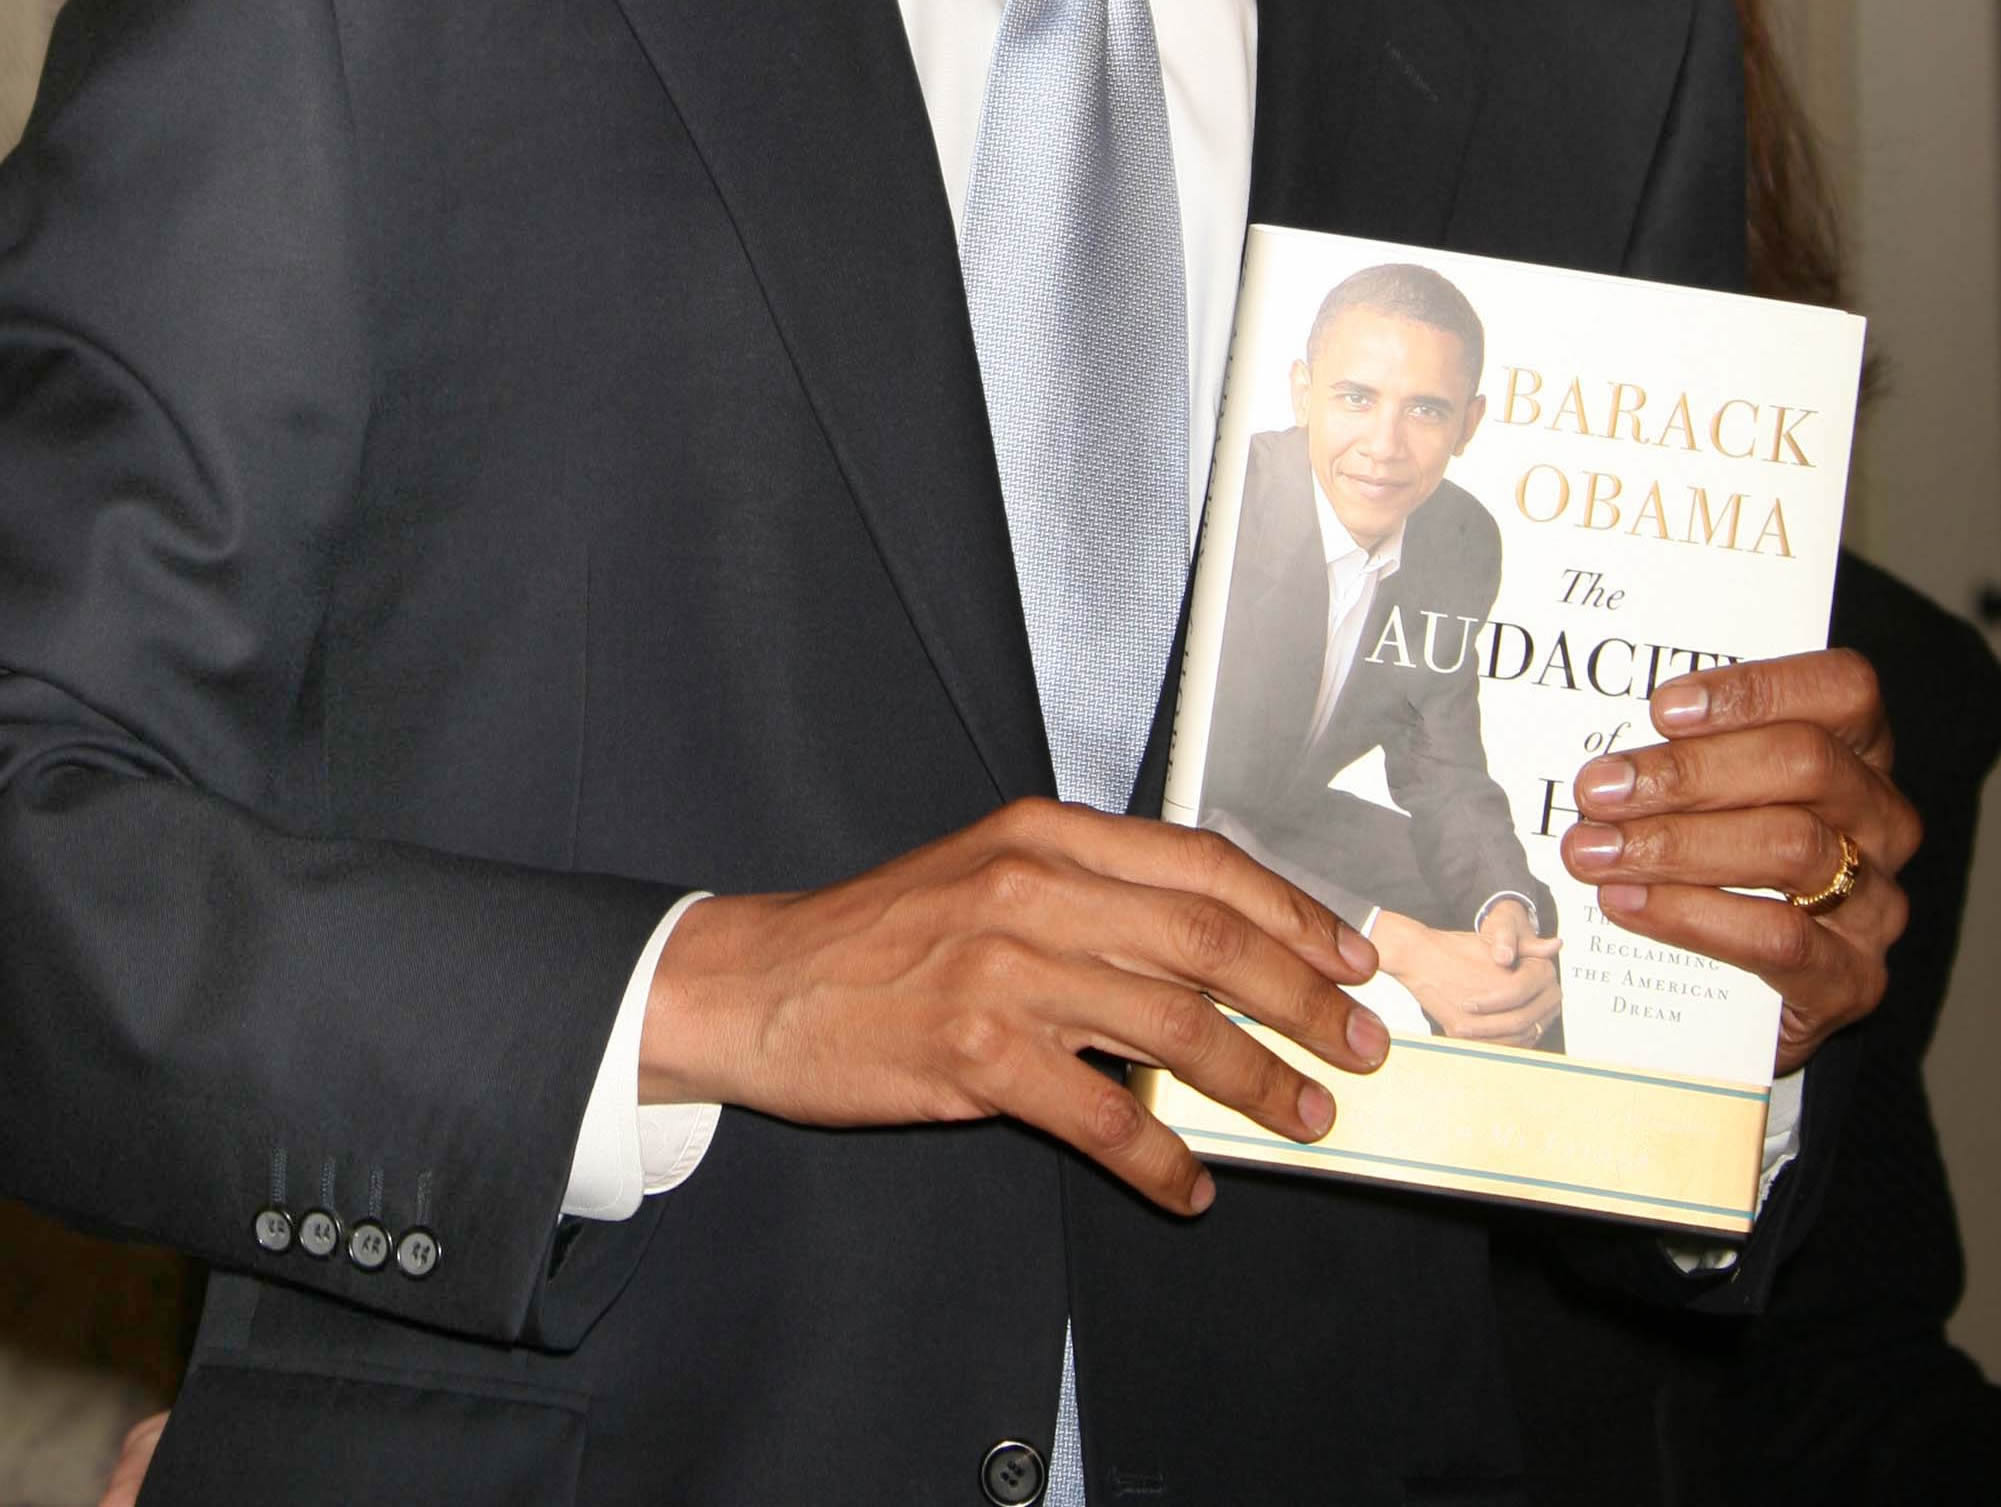 Obama-audacity-hope-book